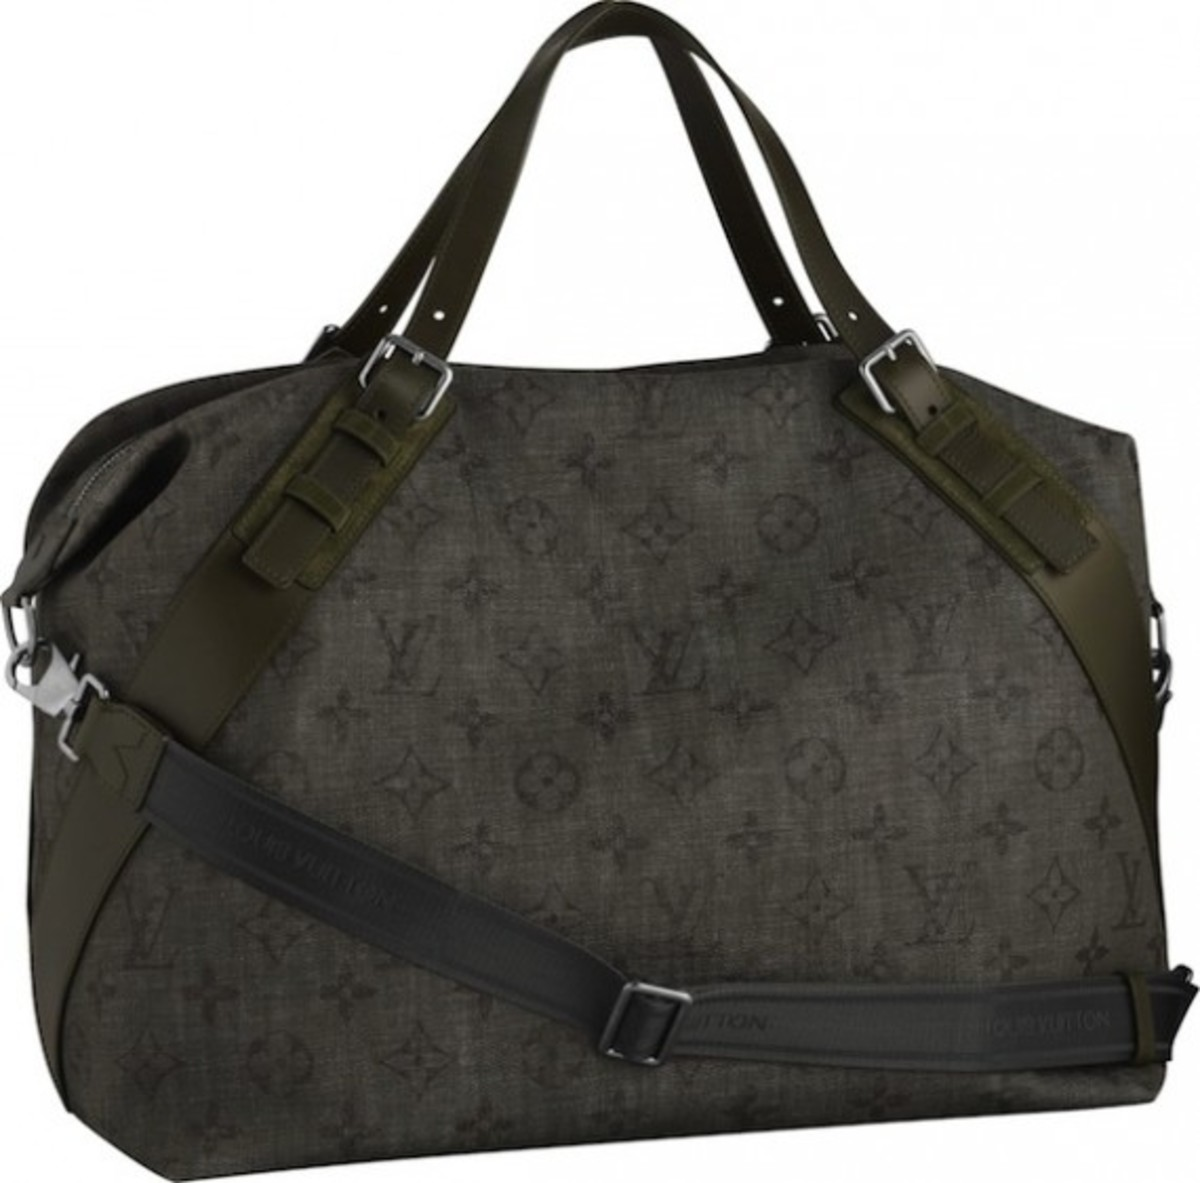 LV Monogram-Impression-Sac-Weekend